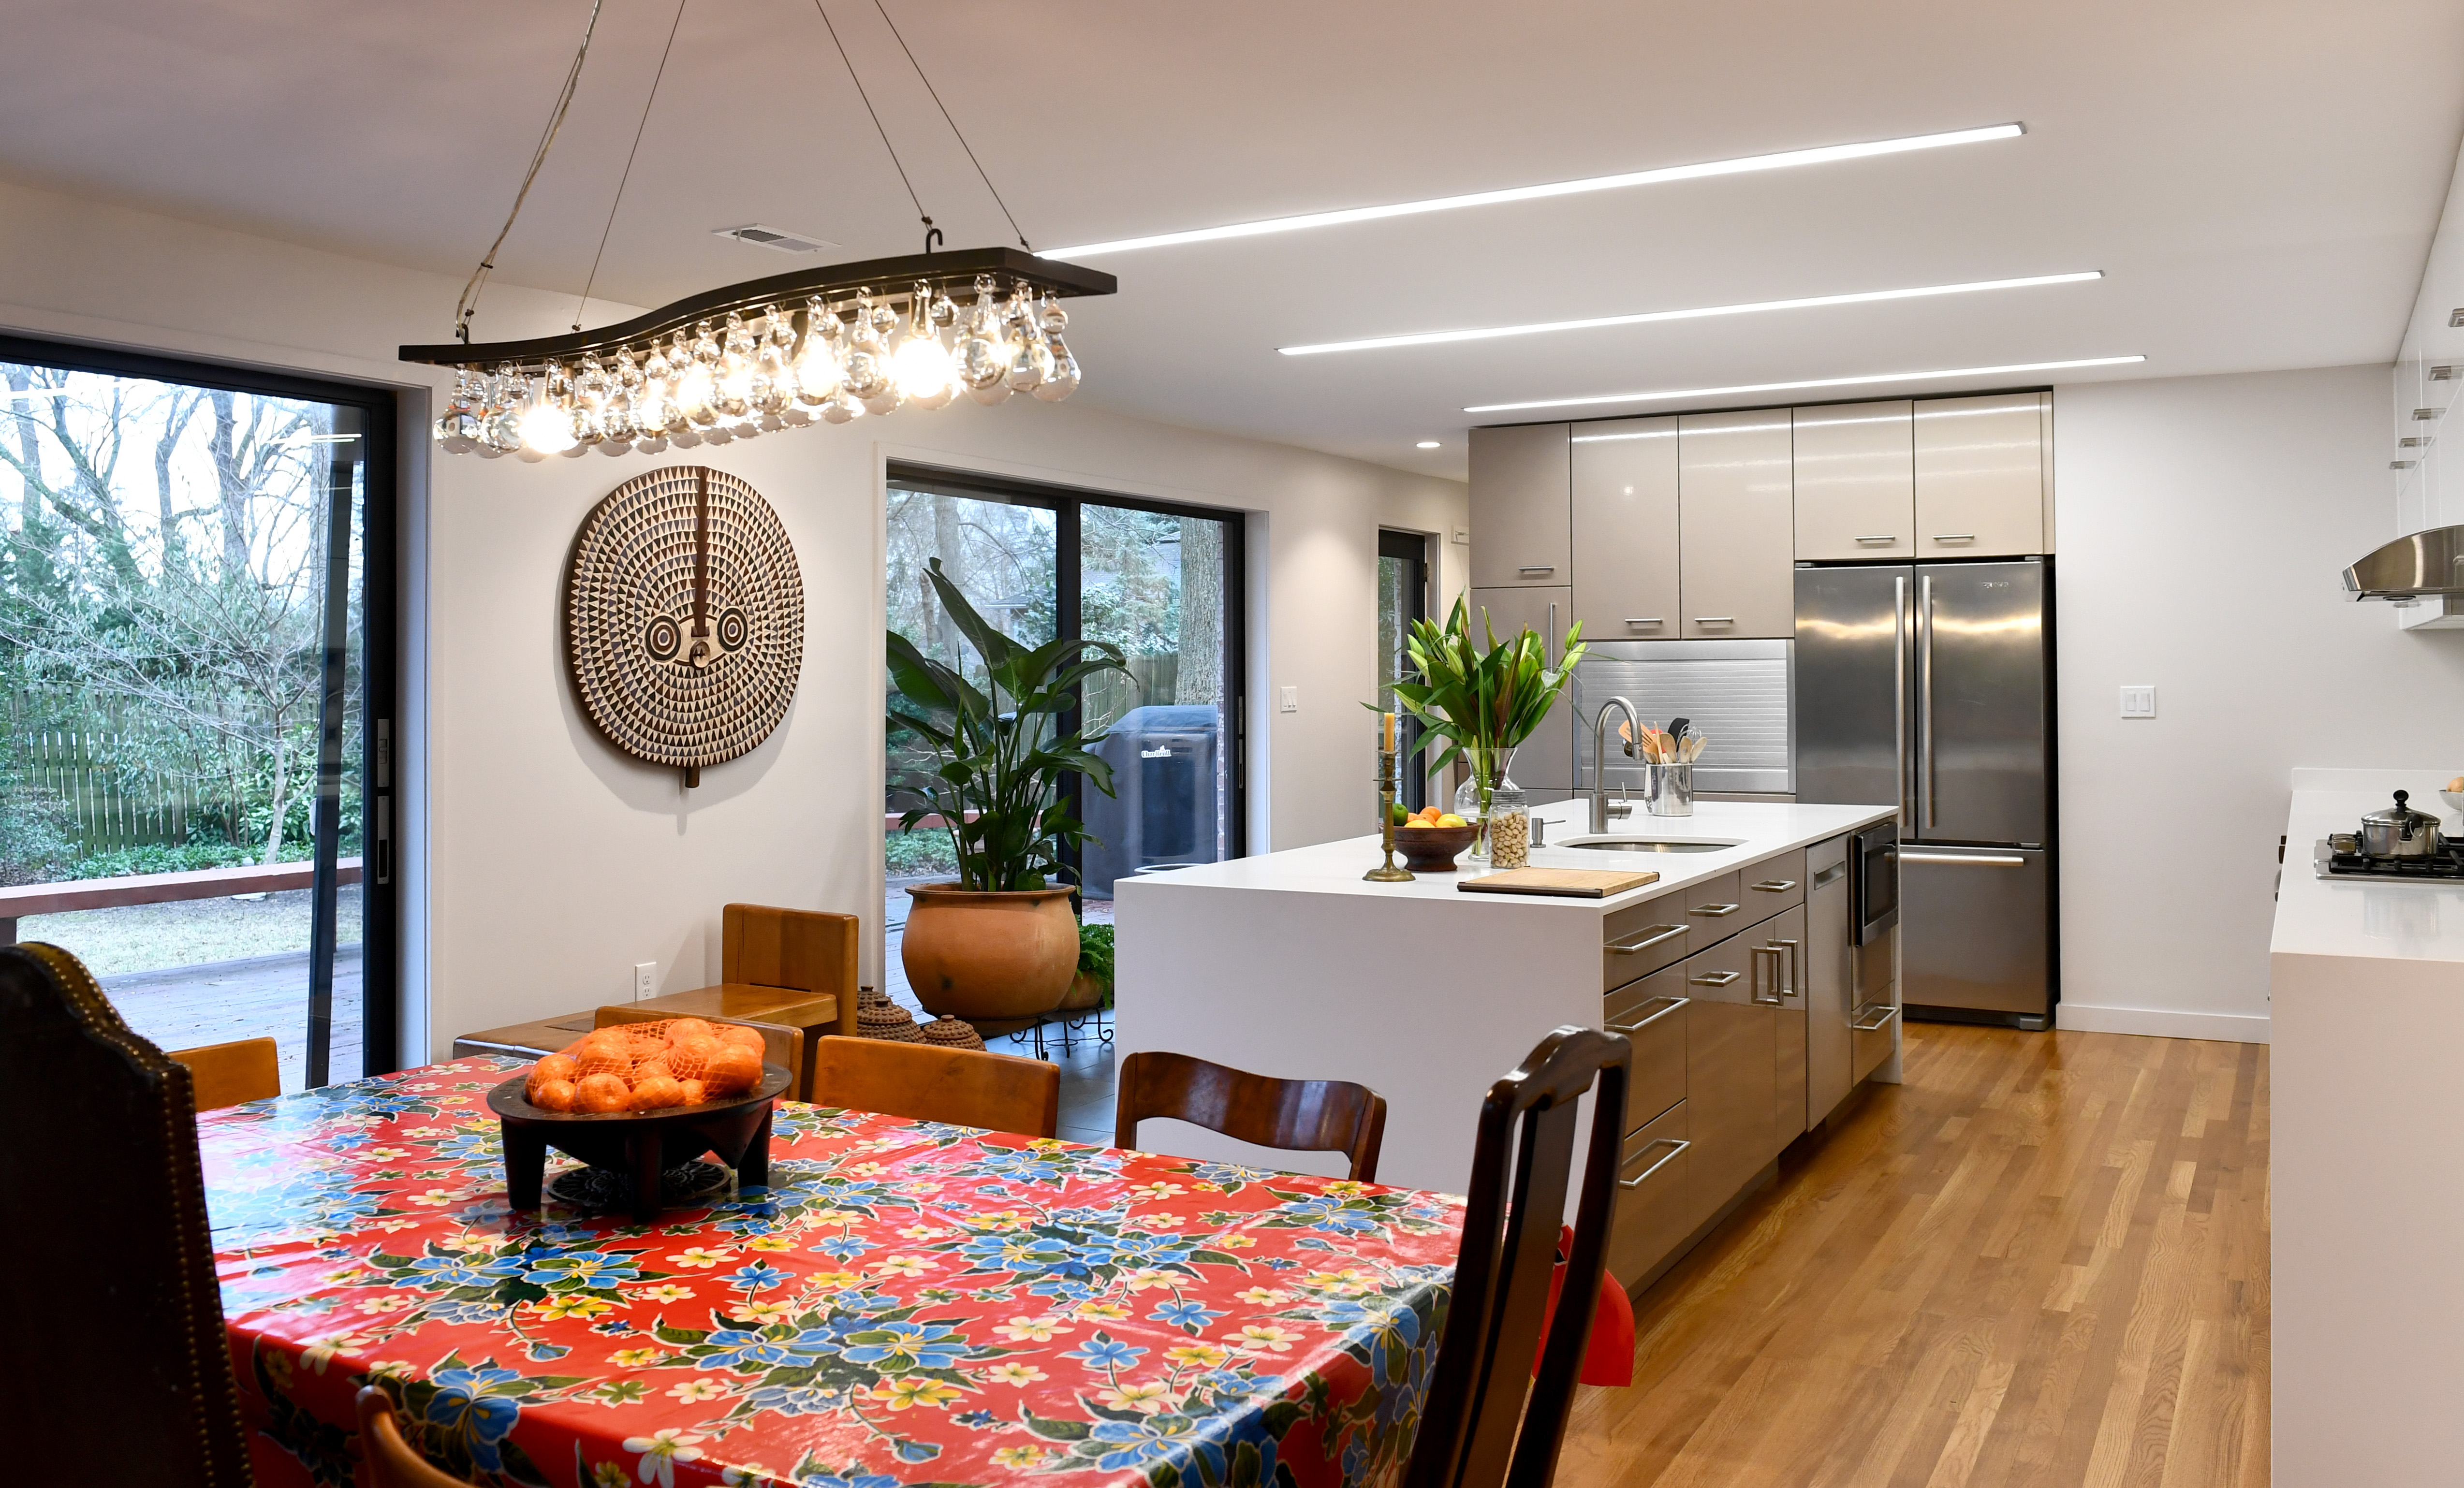 How To Get A Good Deal On A Kitchen Remodel The Washington